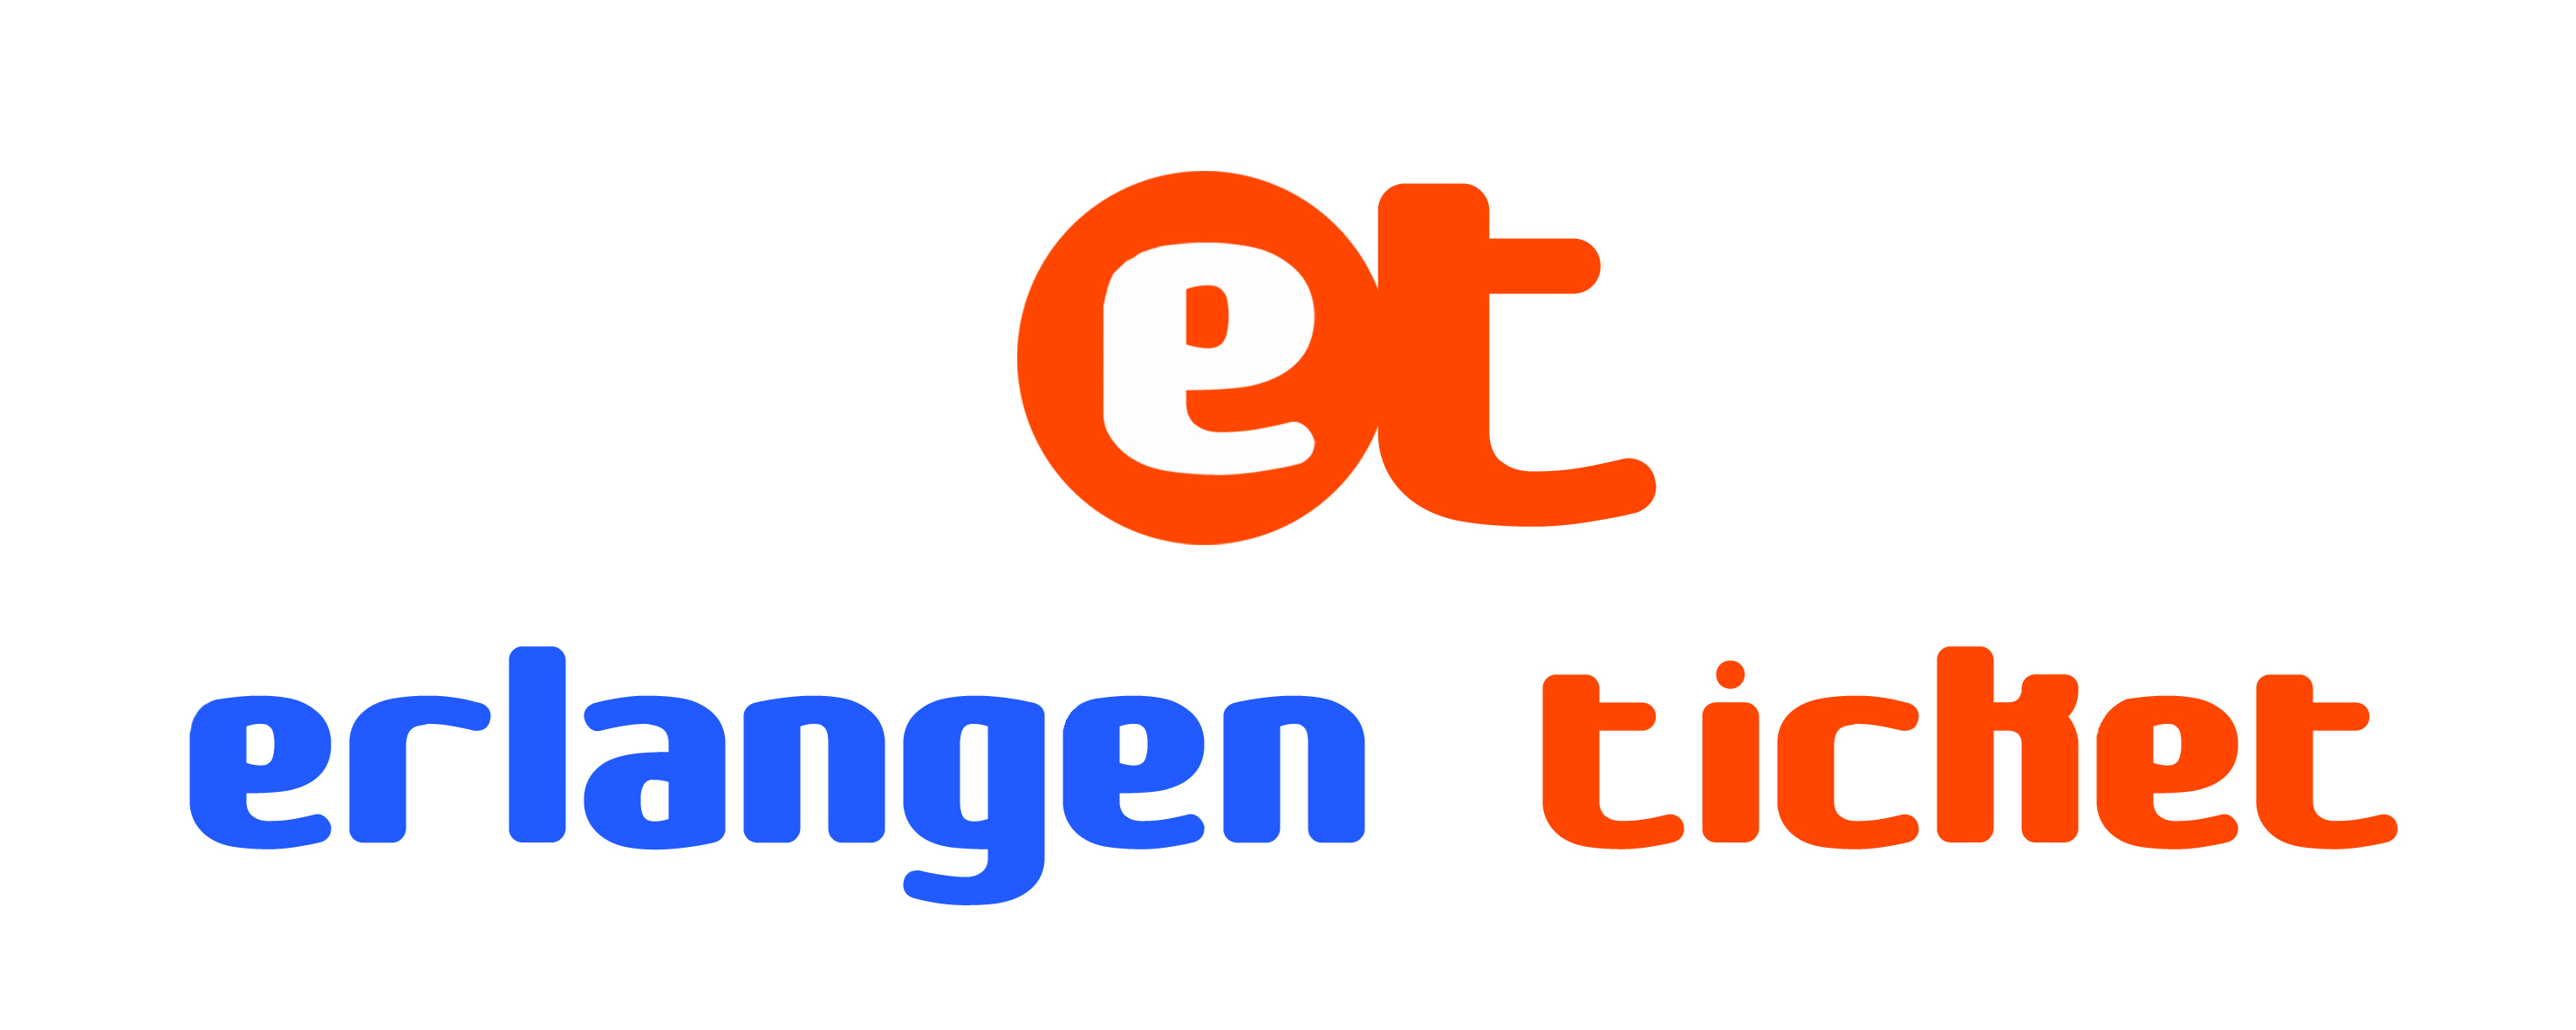 Erlangen Ticket logo